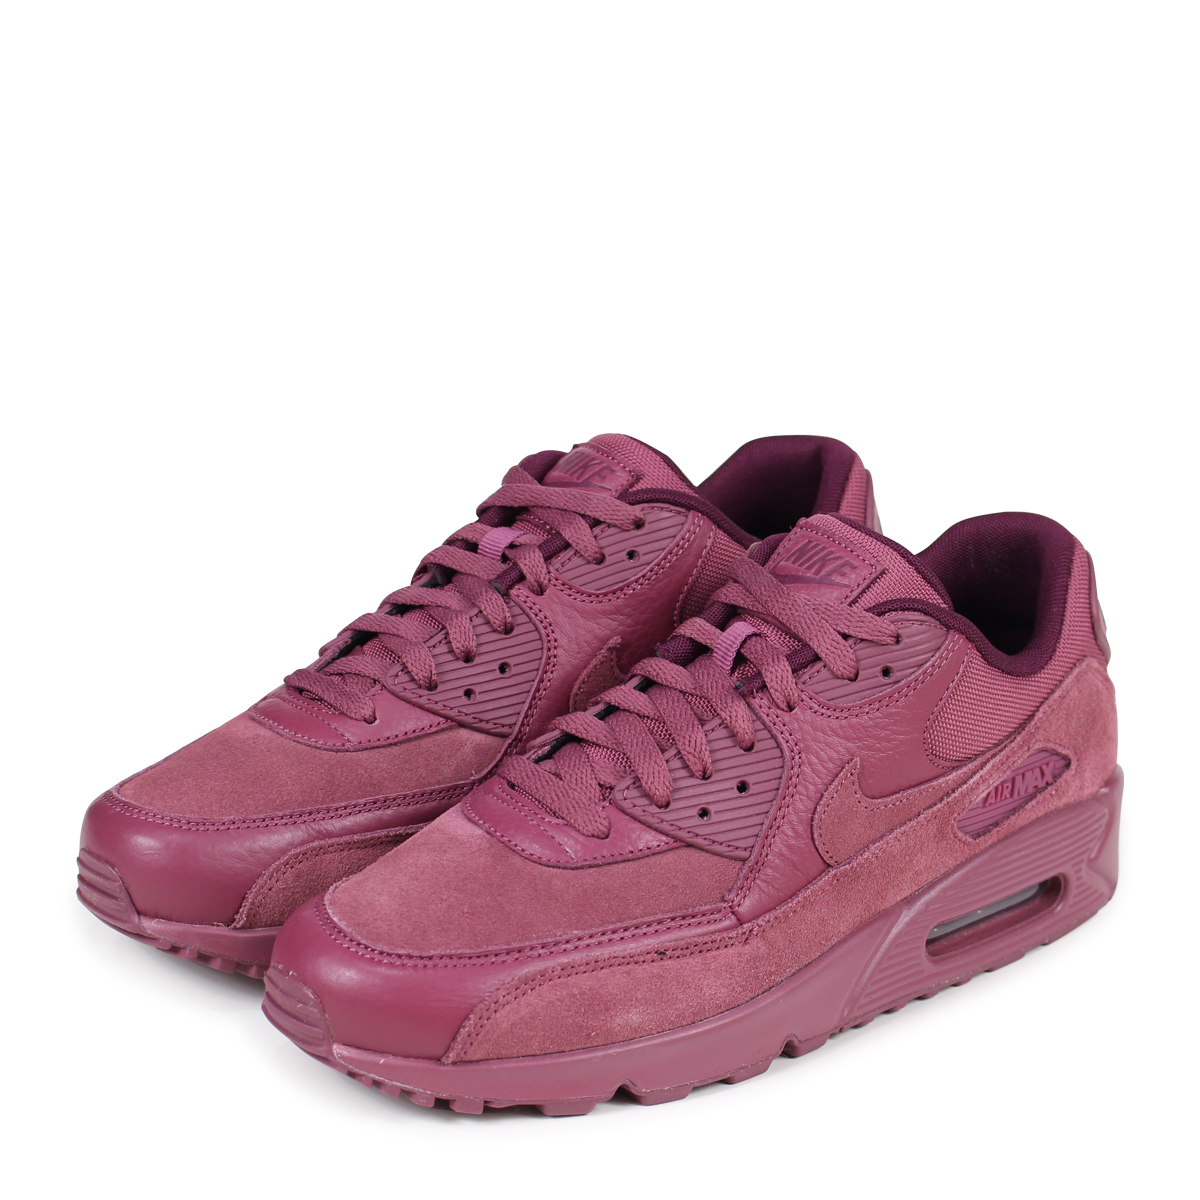 low priced e768e ae0e2 NIKE AIR MAX 90 PREMIUM Kie Ney AMAX 90 sneakers men 700,155-601 red ...